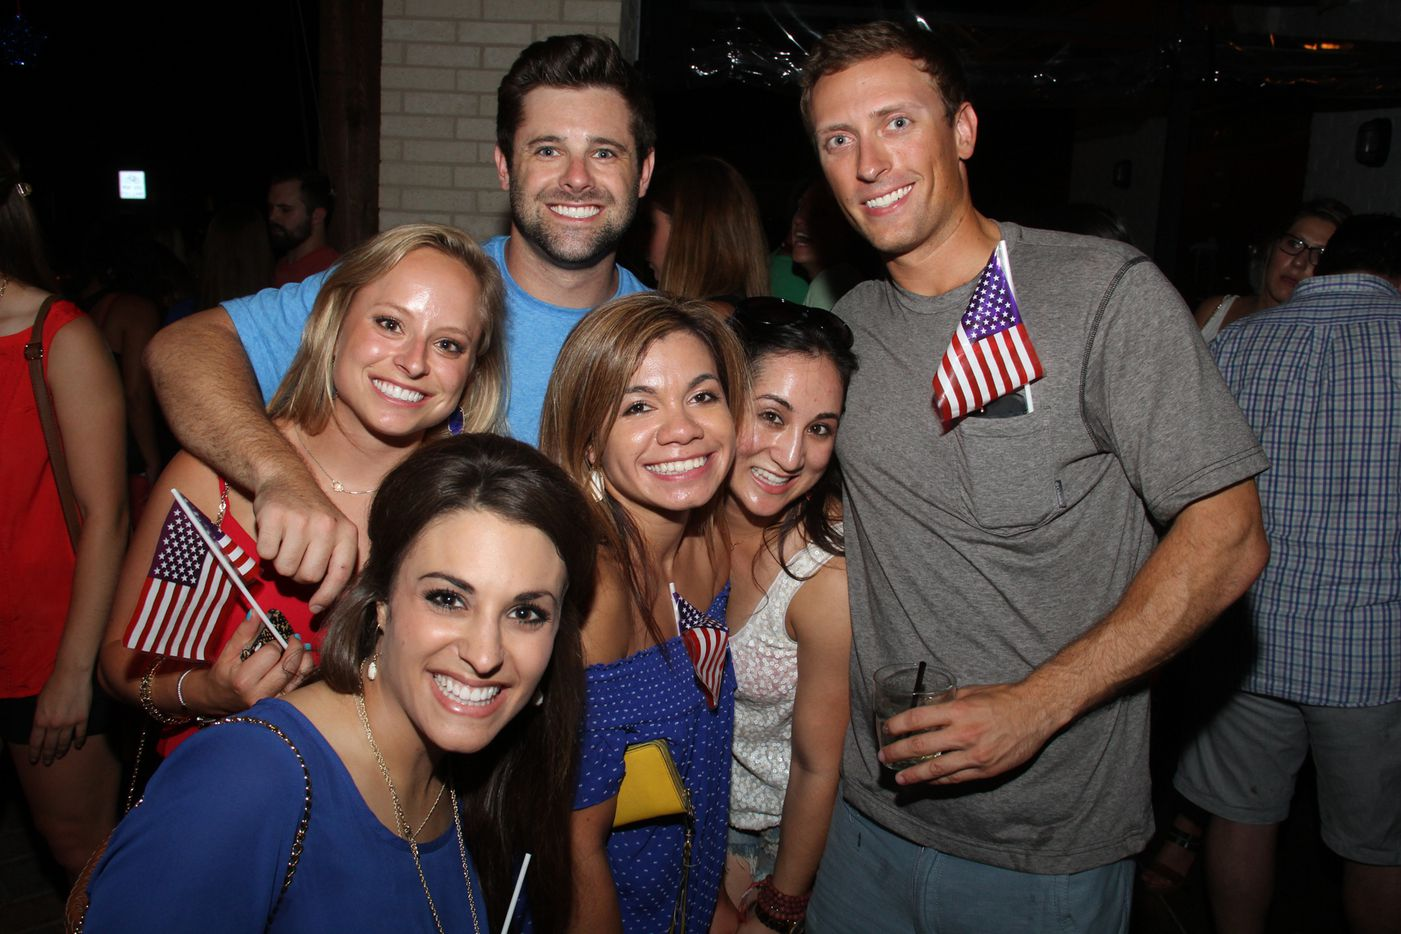 Revelers gathered at High Fives on Henderson Avenue as part of a three-bar block party on July 3 in Dallas.